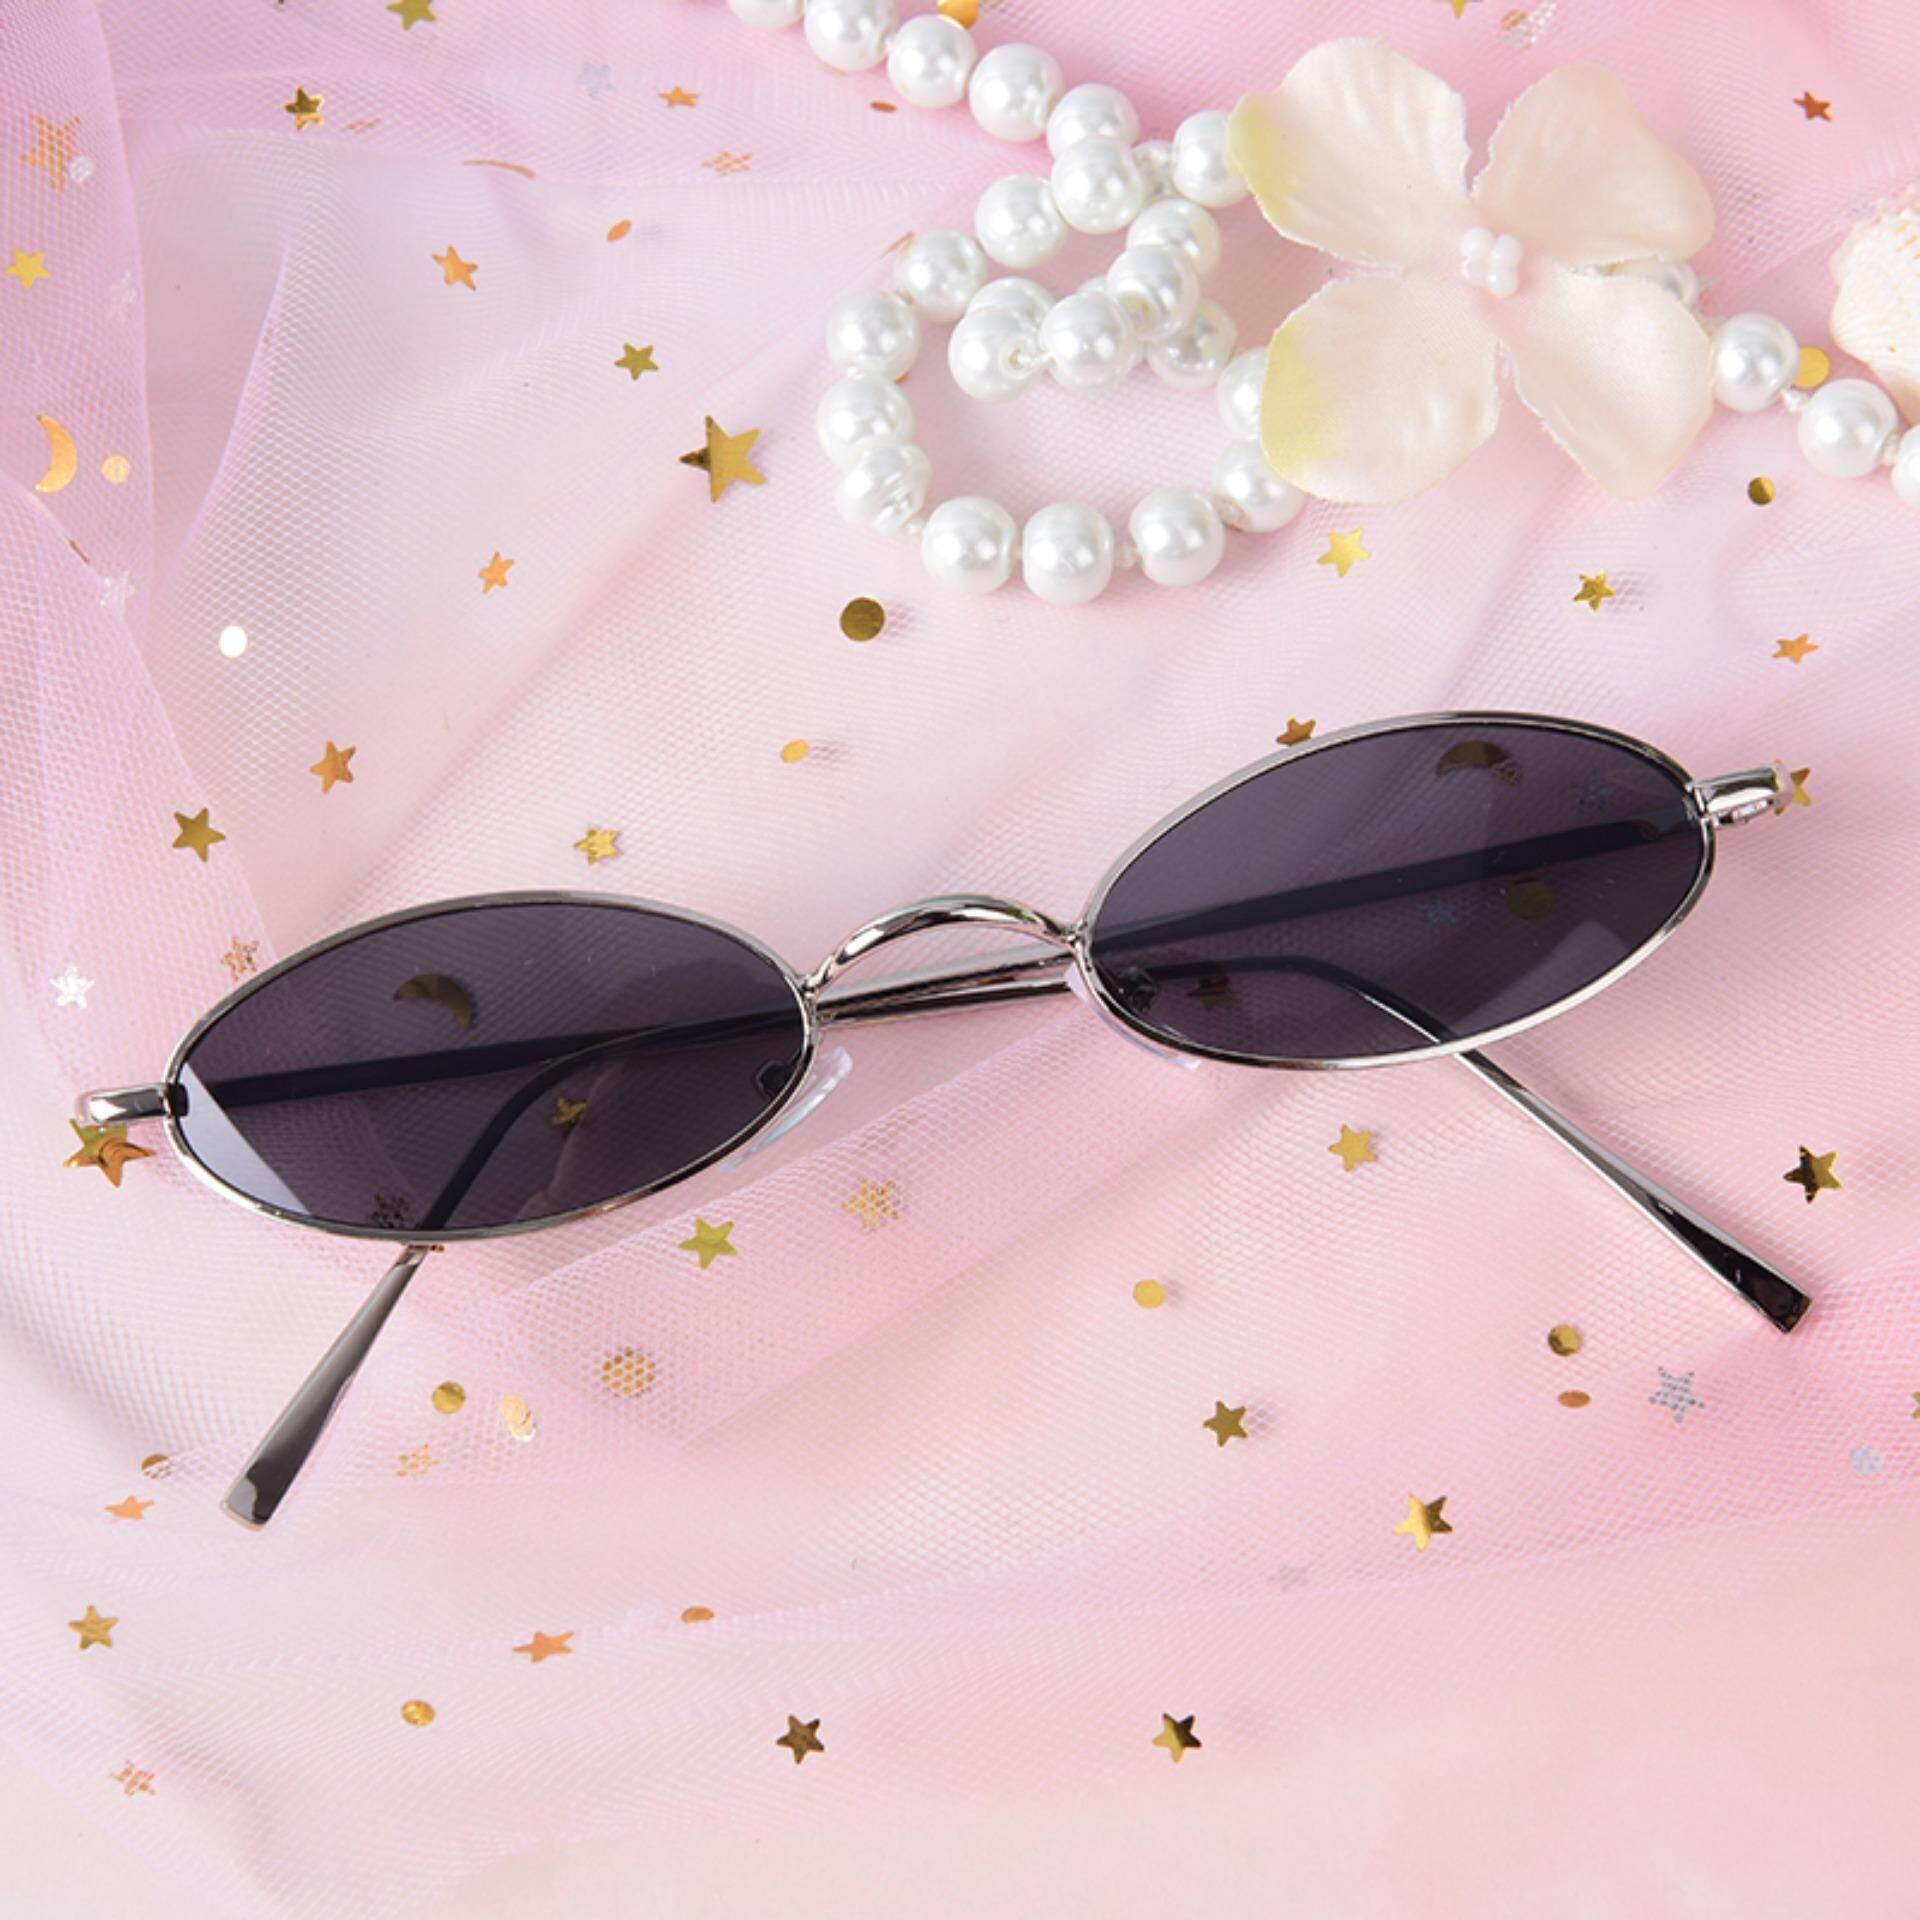 b4b6e021ee02 Vintage Small Oval Metal Frame Sunglasses Women'S Retro Shades Trendy  Glasses Silver & Grey